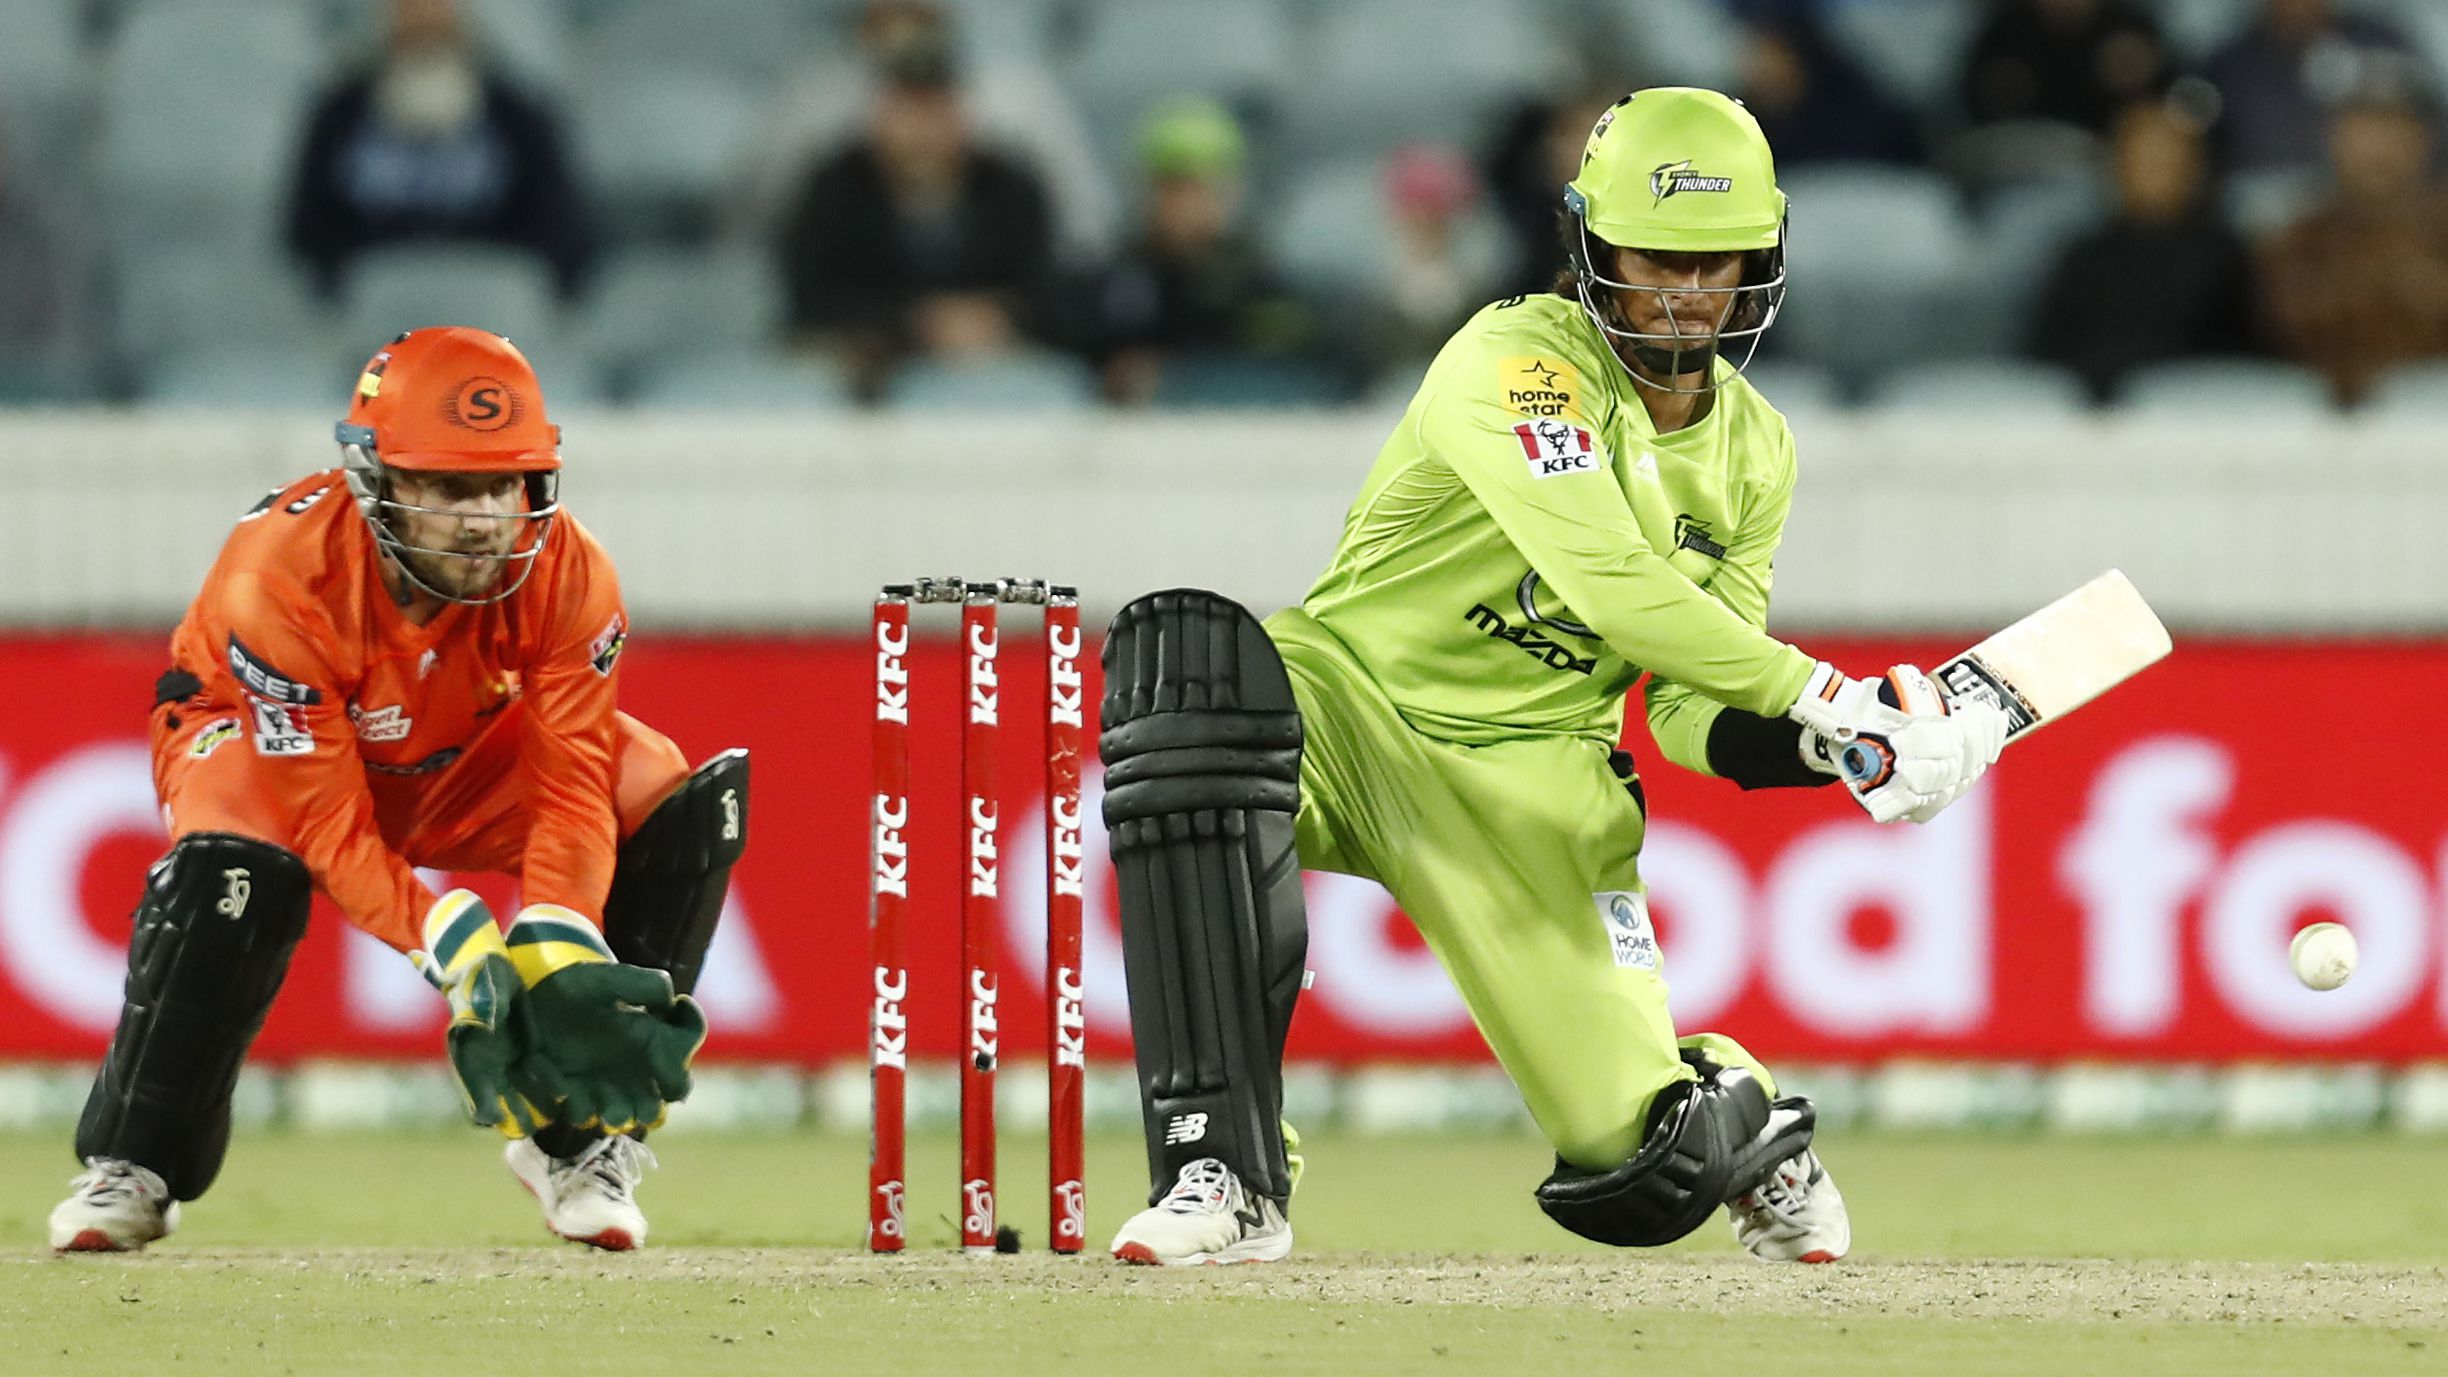 Master and apprentice light up Manuka Oval as Sydney Thunder cruise home against Perth Scorchers – Wide World of Sports